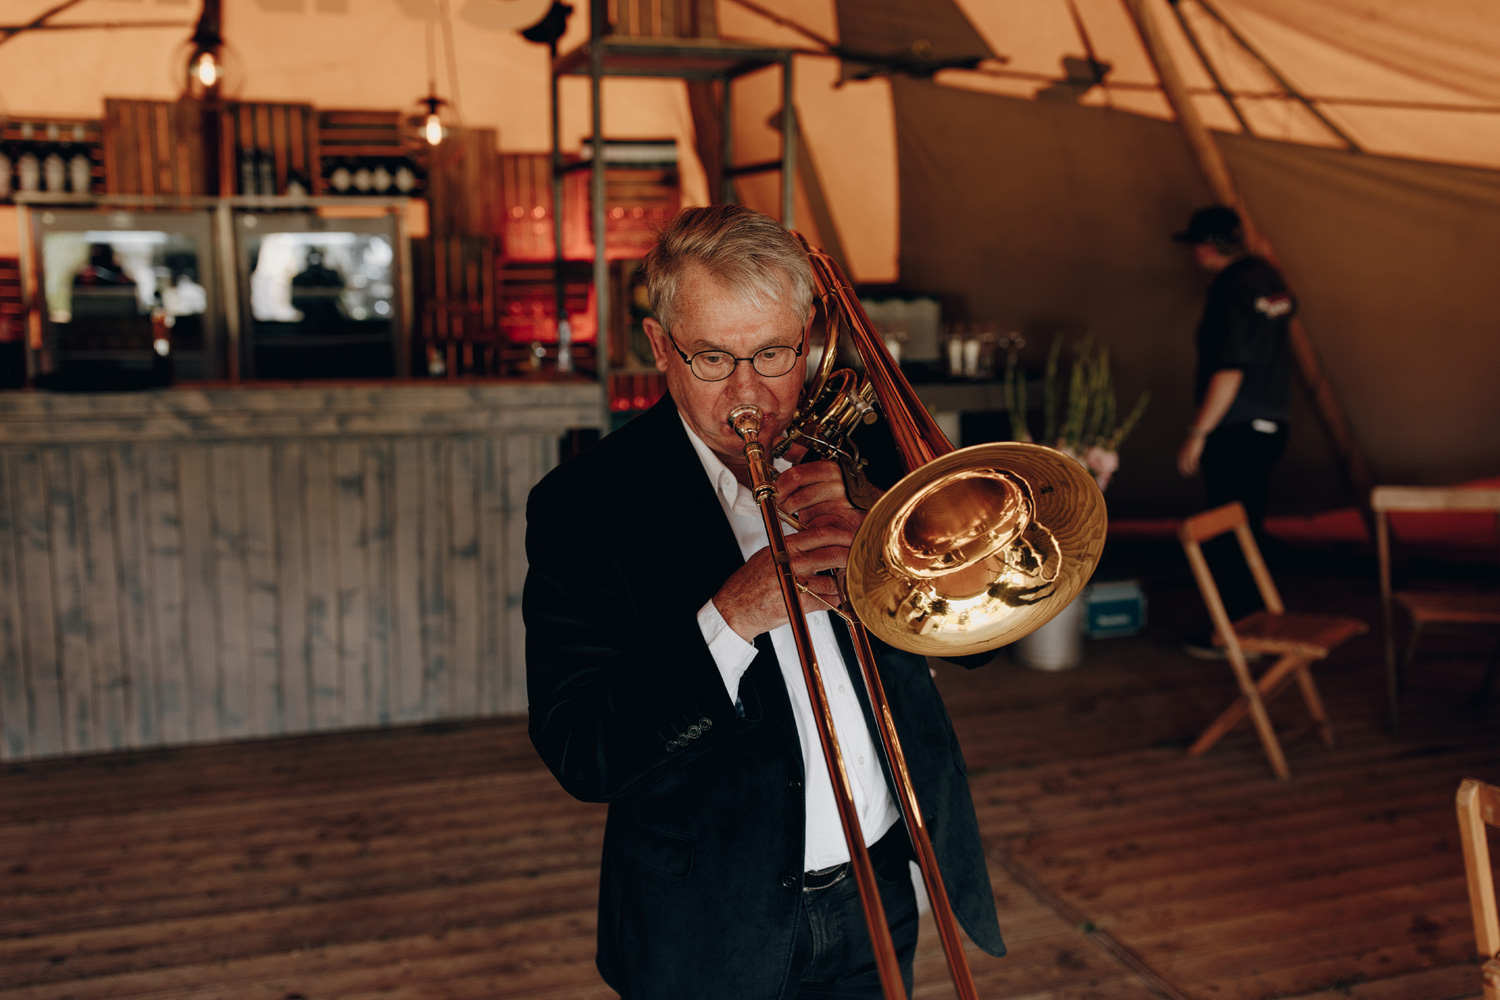 Trumpet player getting ready for wedding